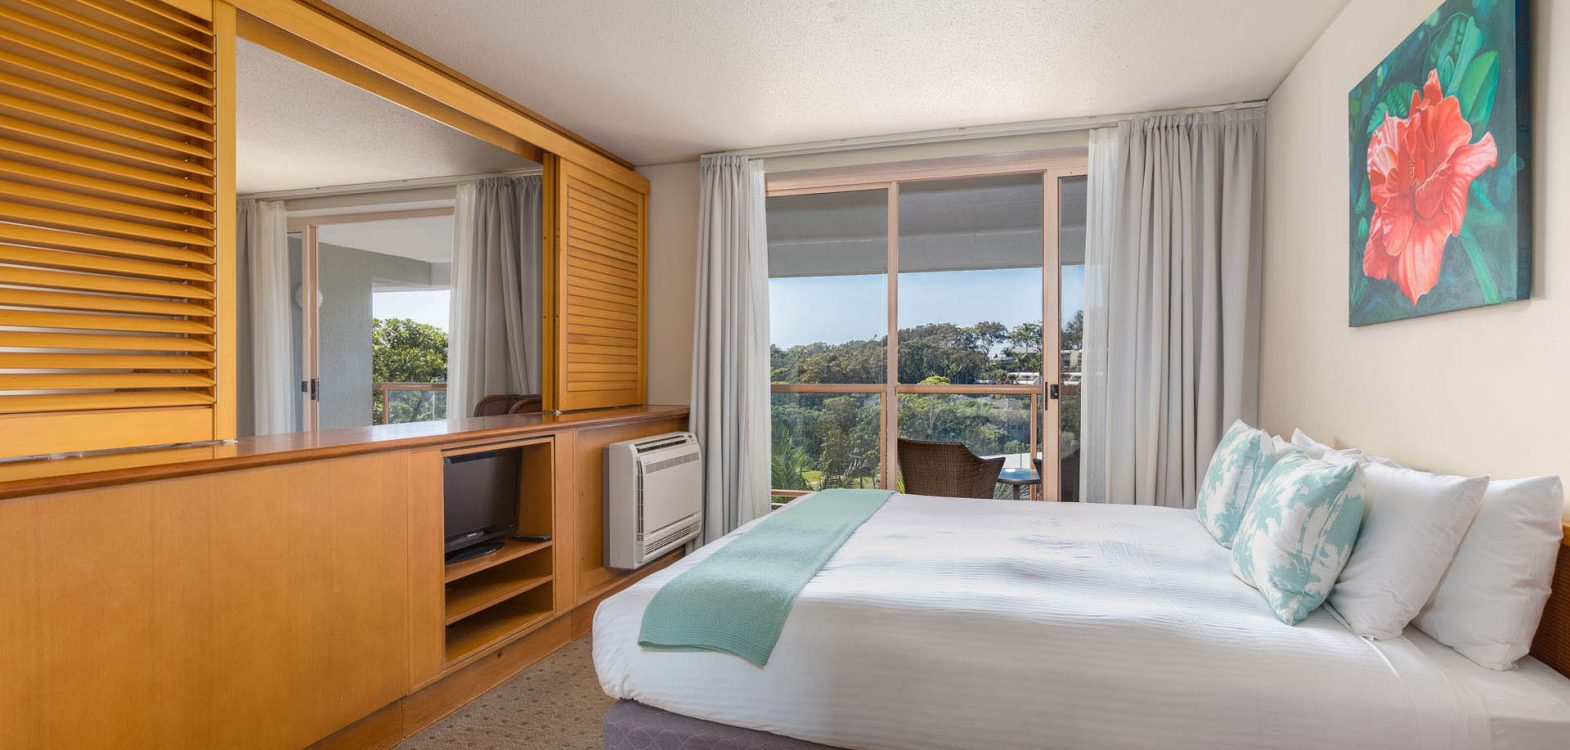 Self Contained Accommodation in Coffs Harbour